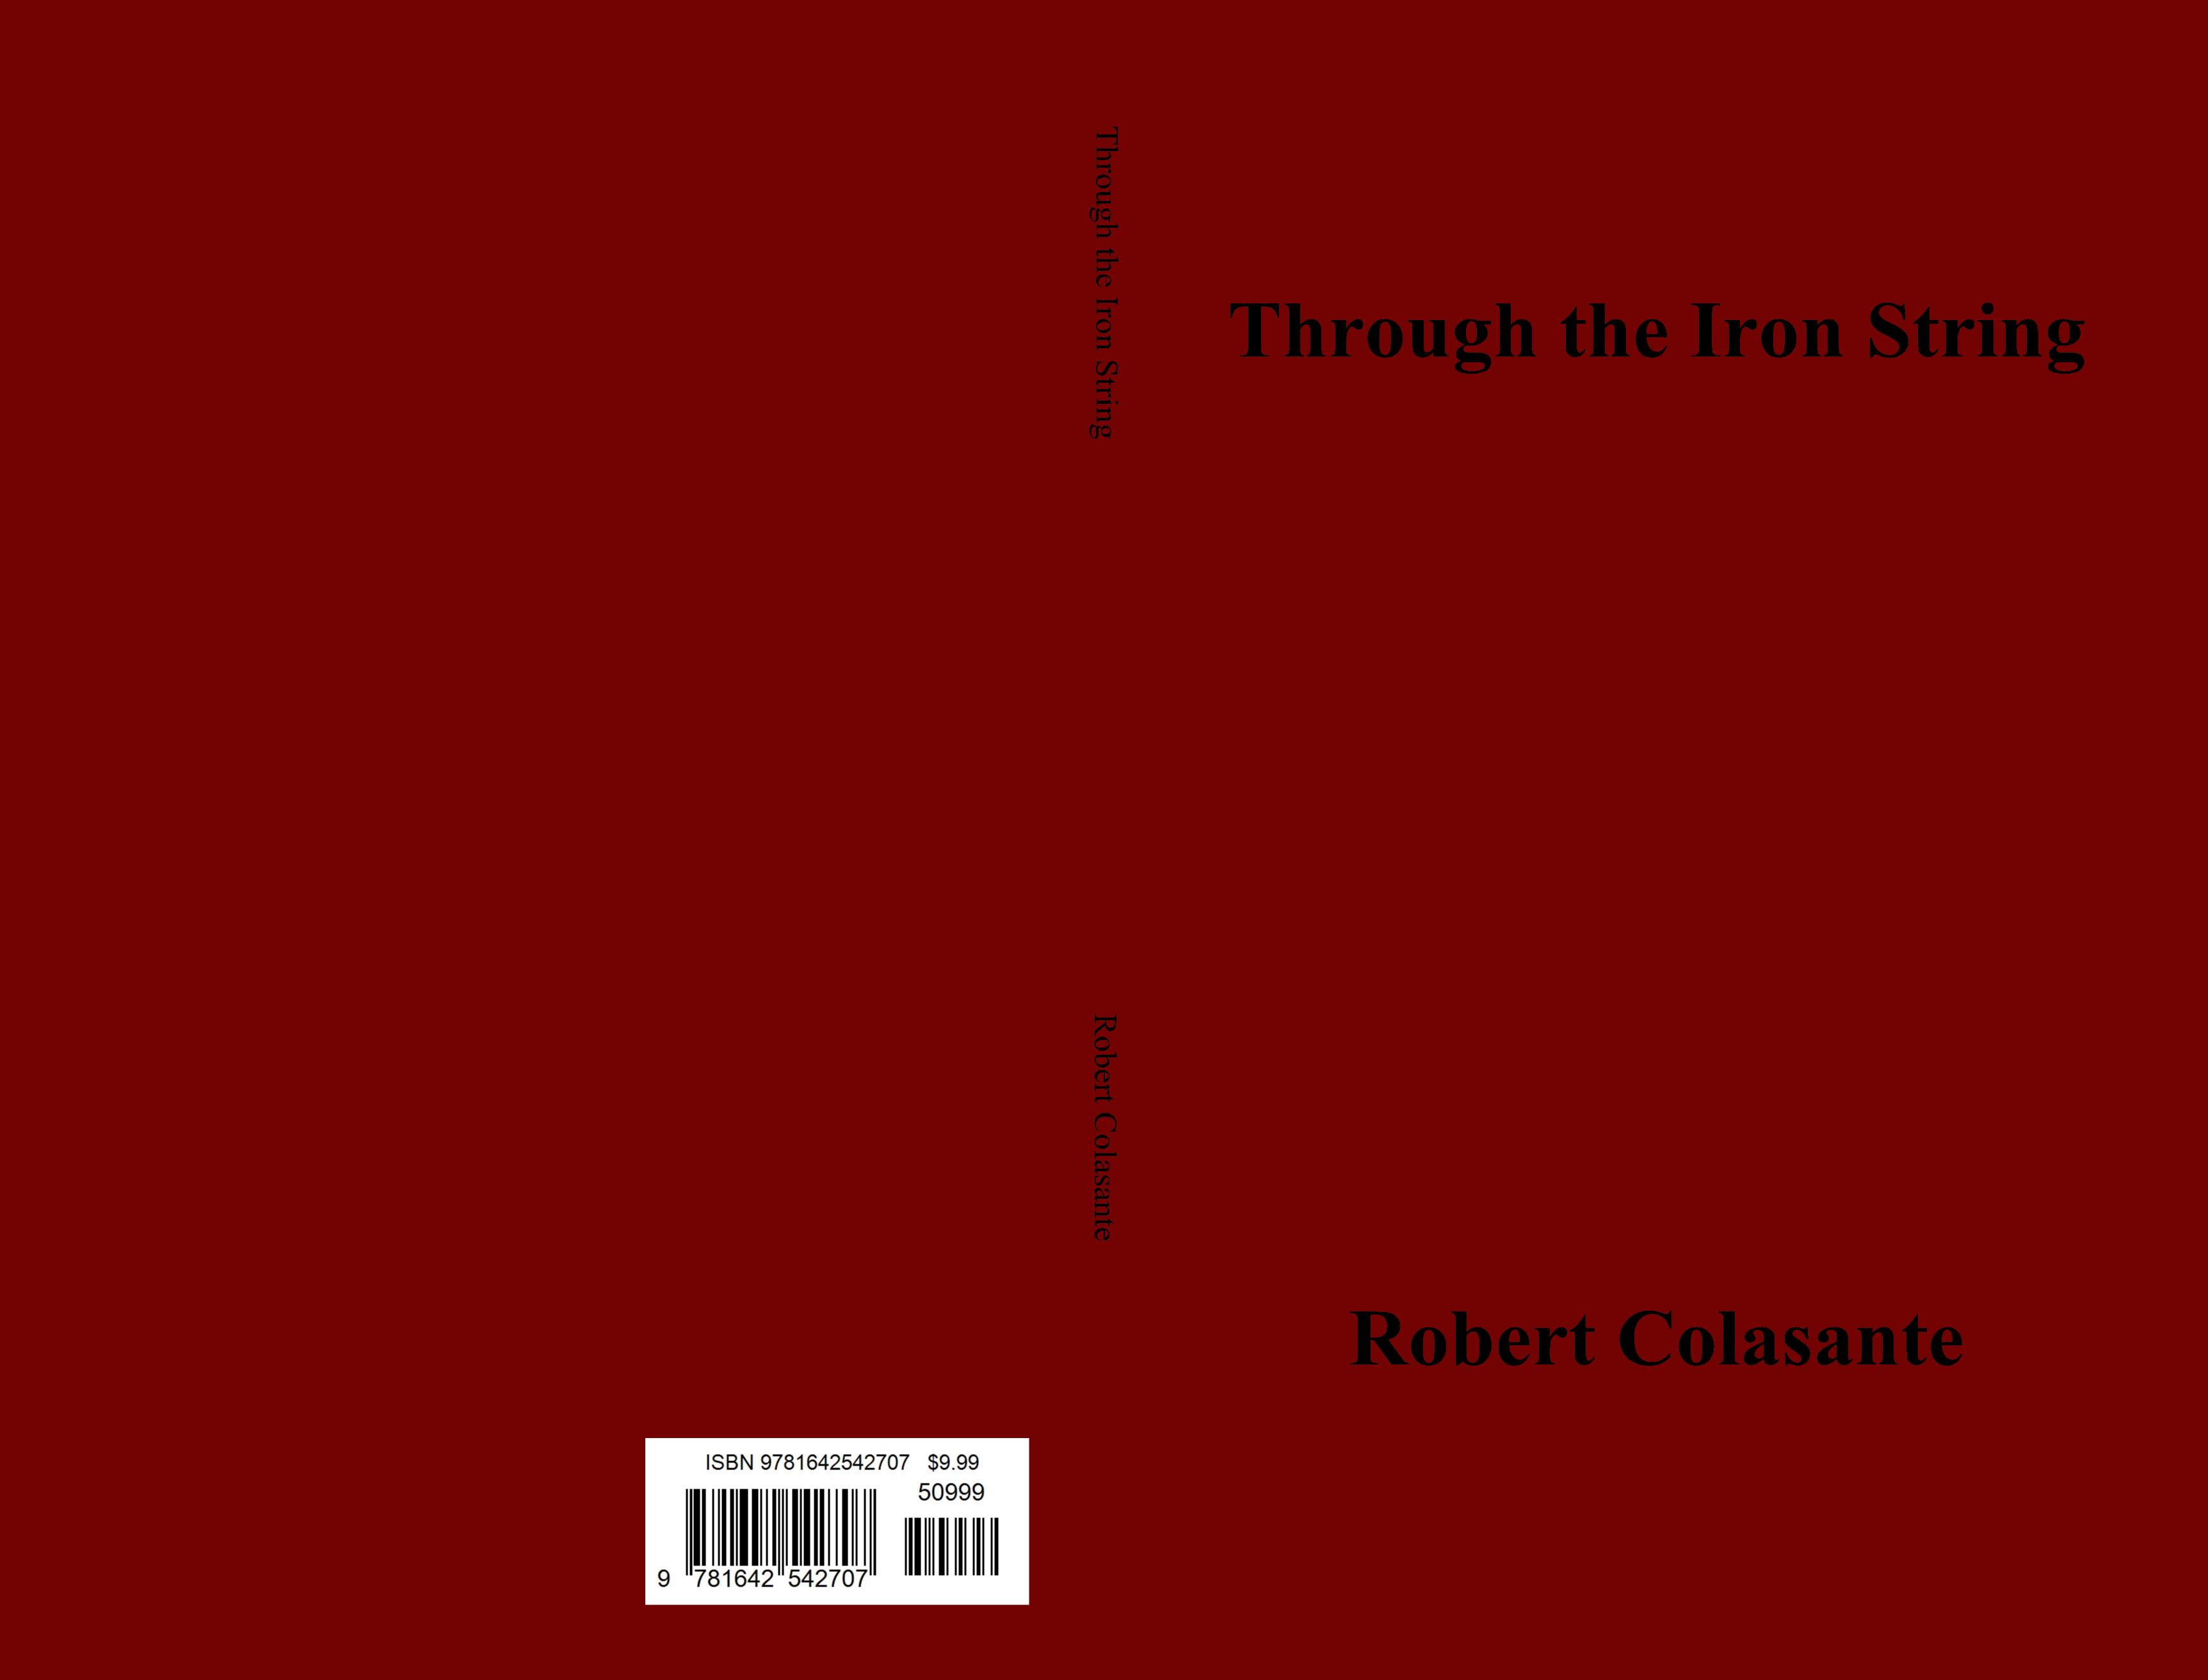 Through the Iron String cover image